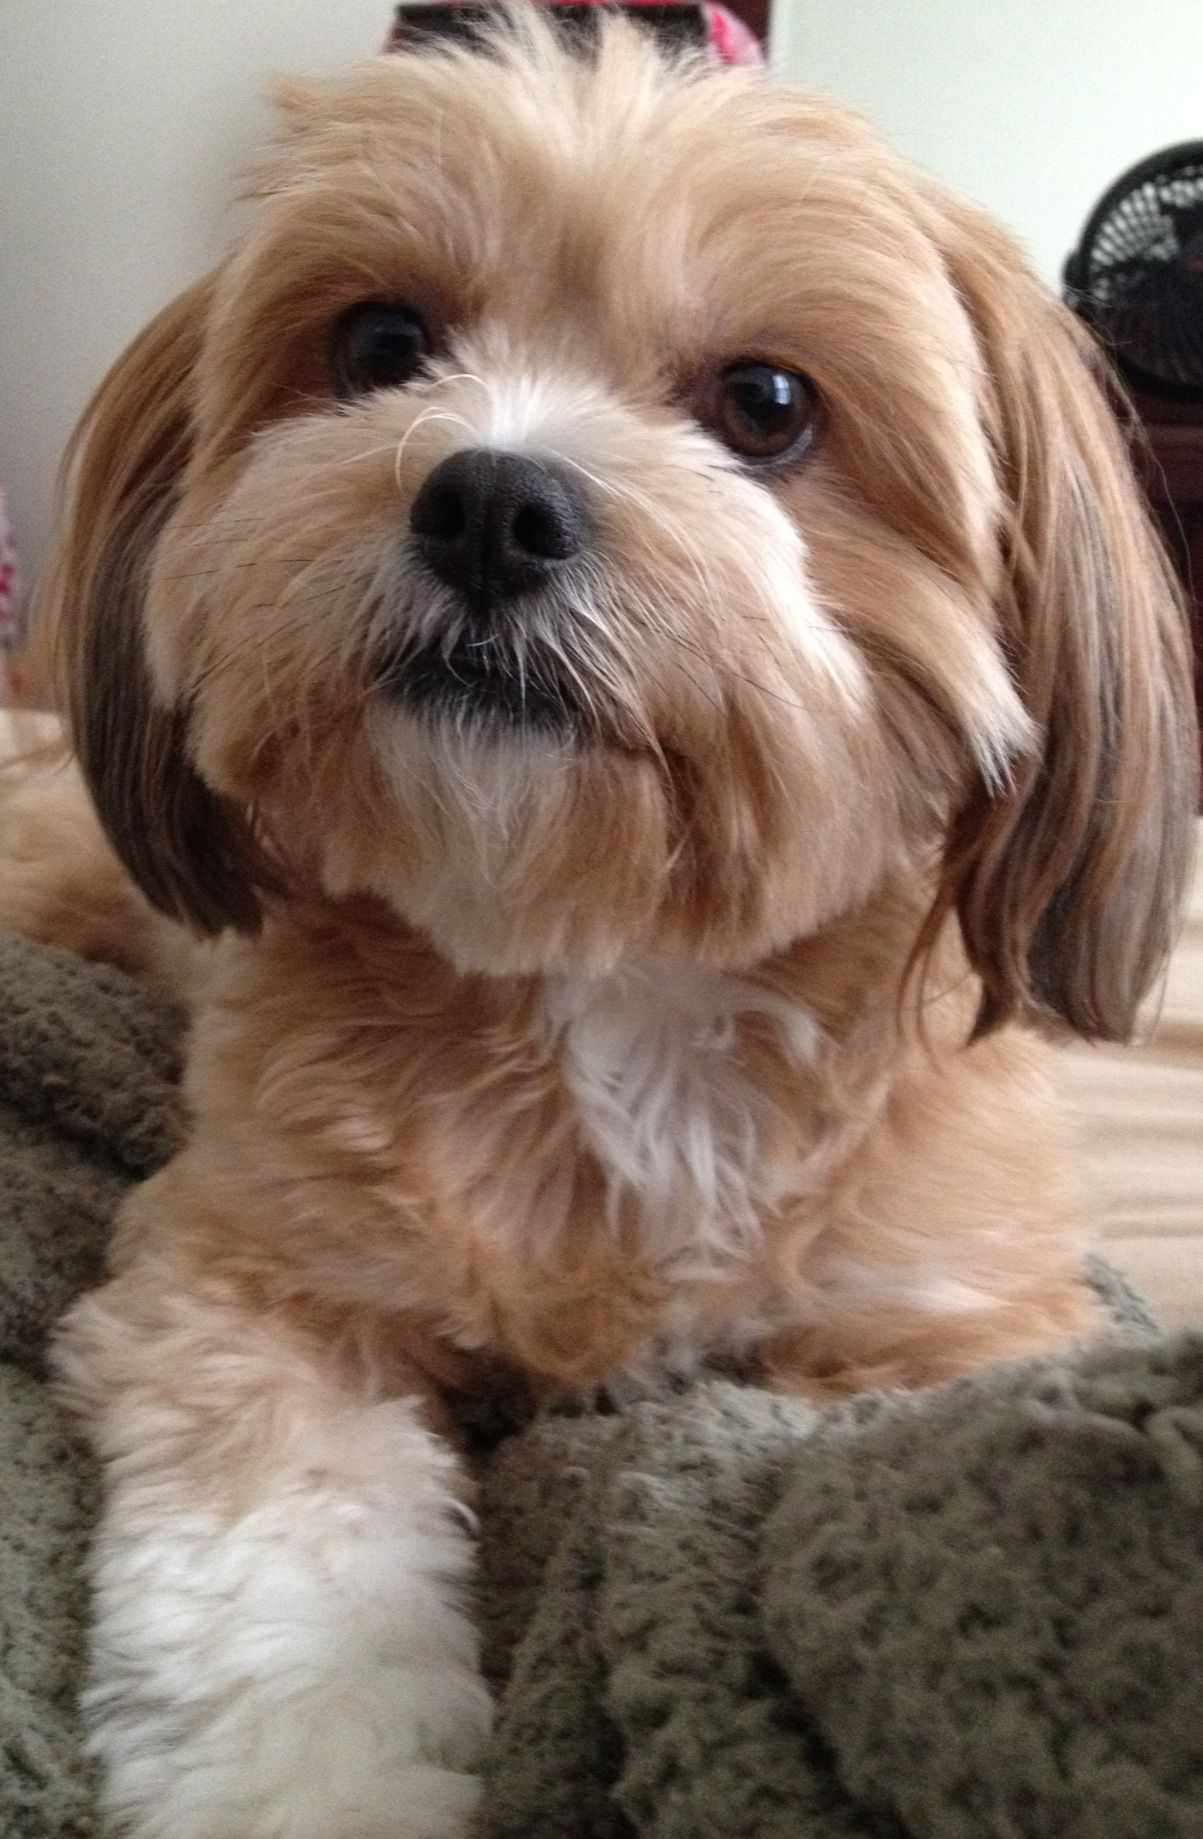 Shih Tzu / Chihuahua mix / for Susan For the Love of